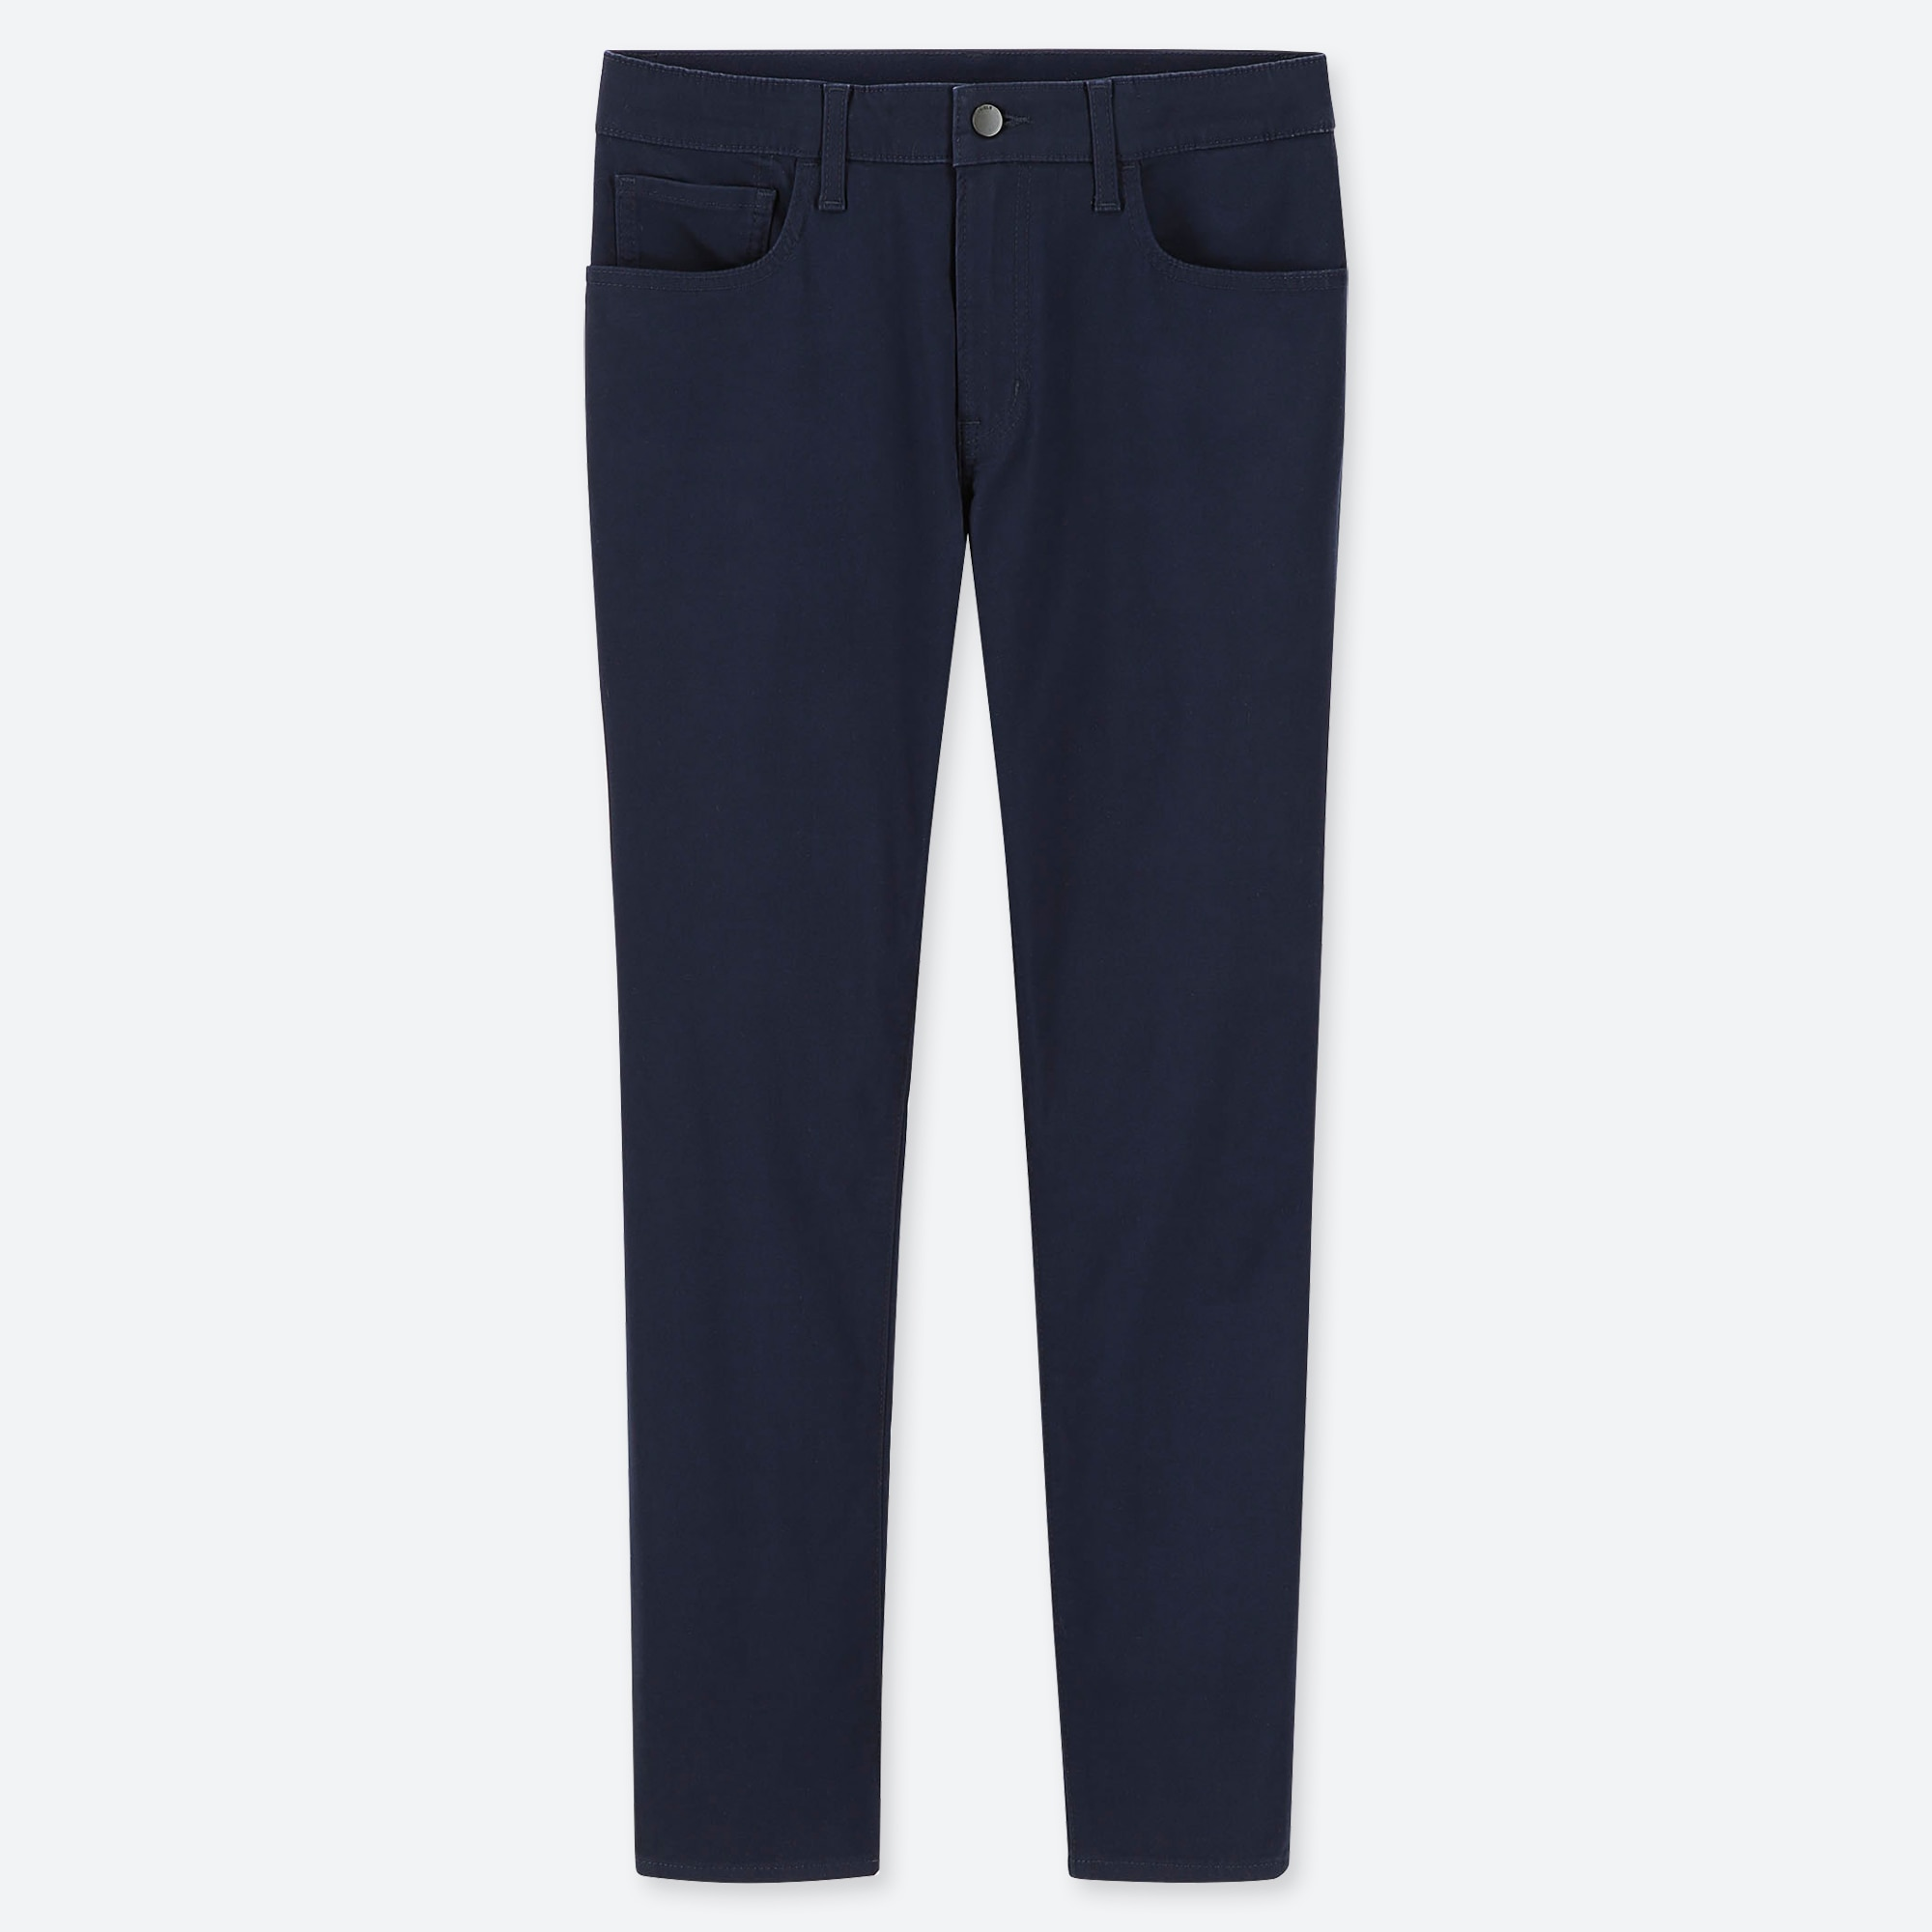 JEAN EZY COULEUR COUPE SKINNY HOMME | UNIQLO